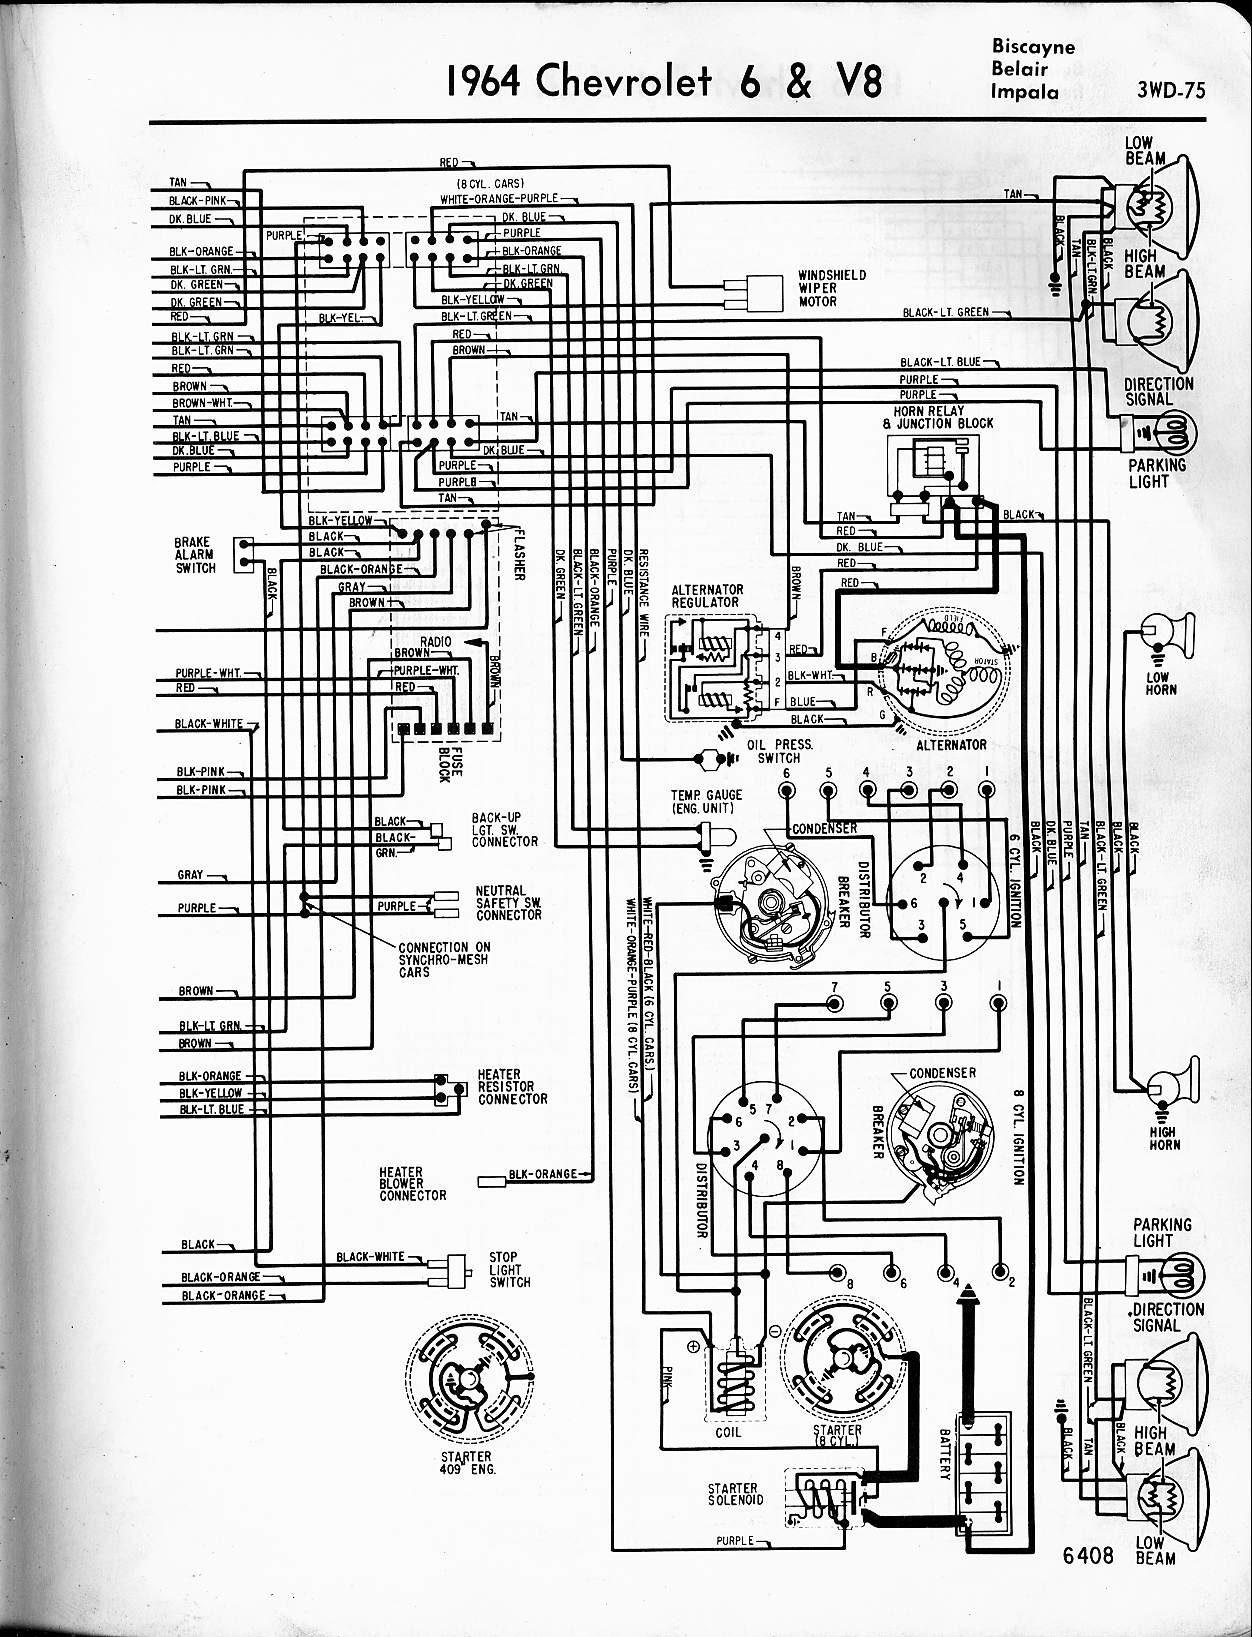 i have 1964 chevy impala can you tell me where the three wires go rh  justanswer com 57 Chevy Ignition Wiring Diagram S10 Engine Diagrams Online